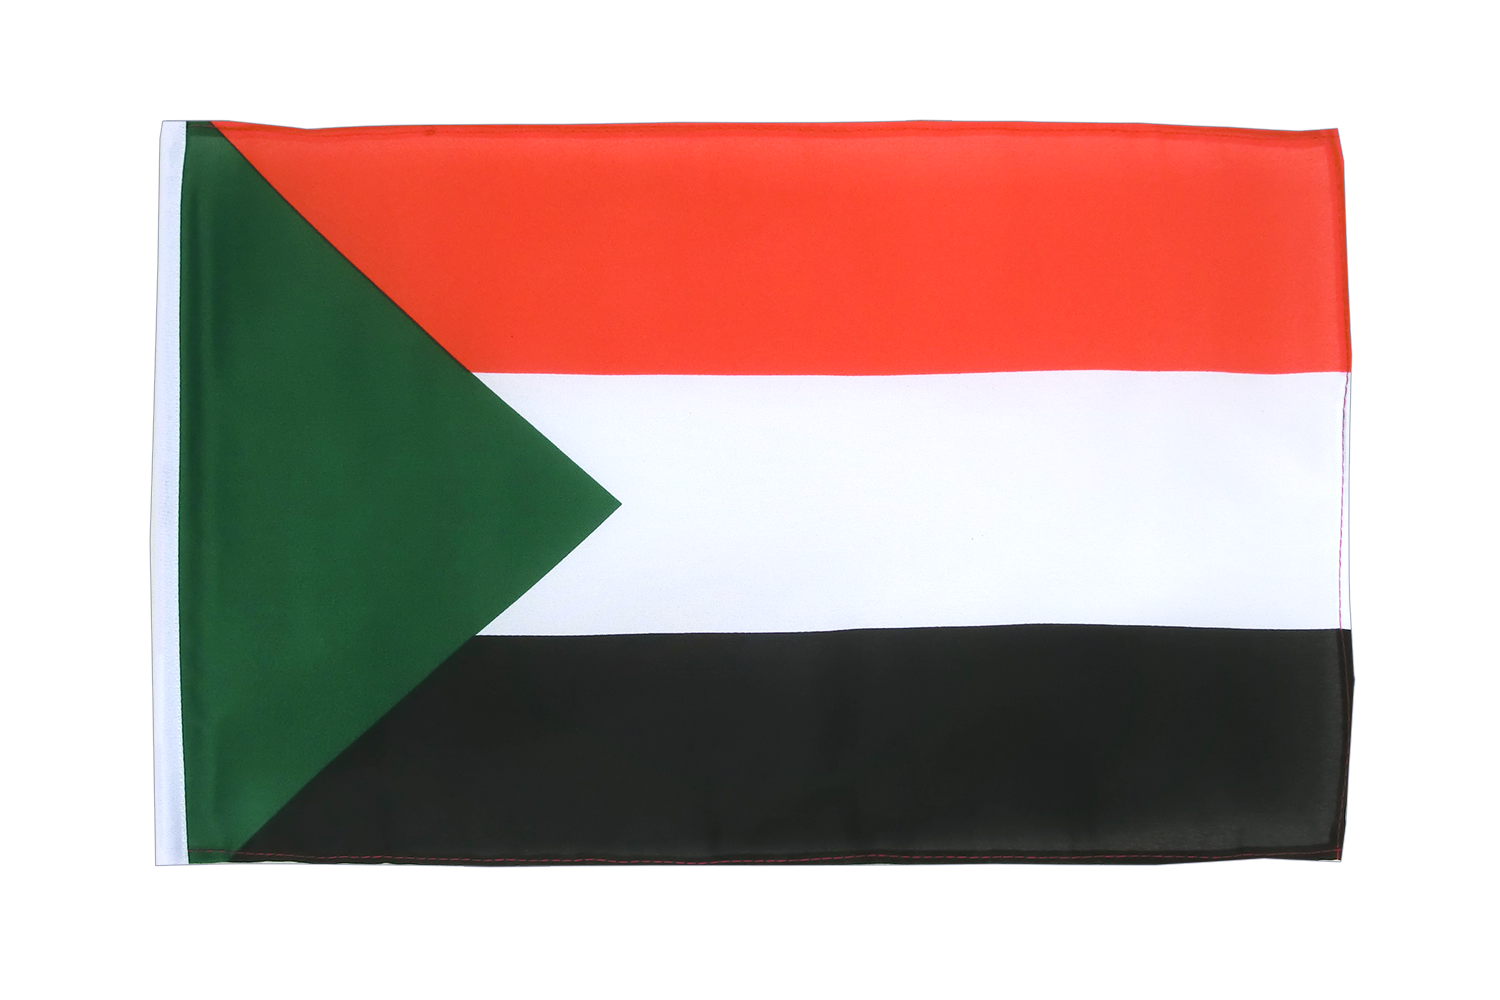 kleine sudan flagge 30 x 45 cm flaggenplatz. Black Bedroom Furniture Sets. Home Design Ideas